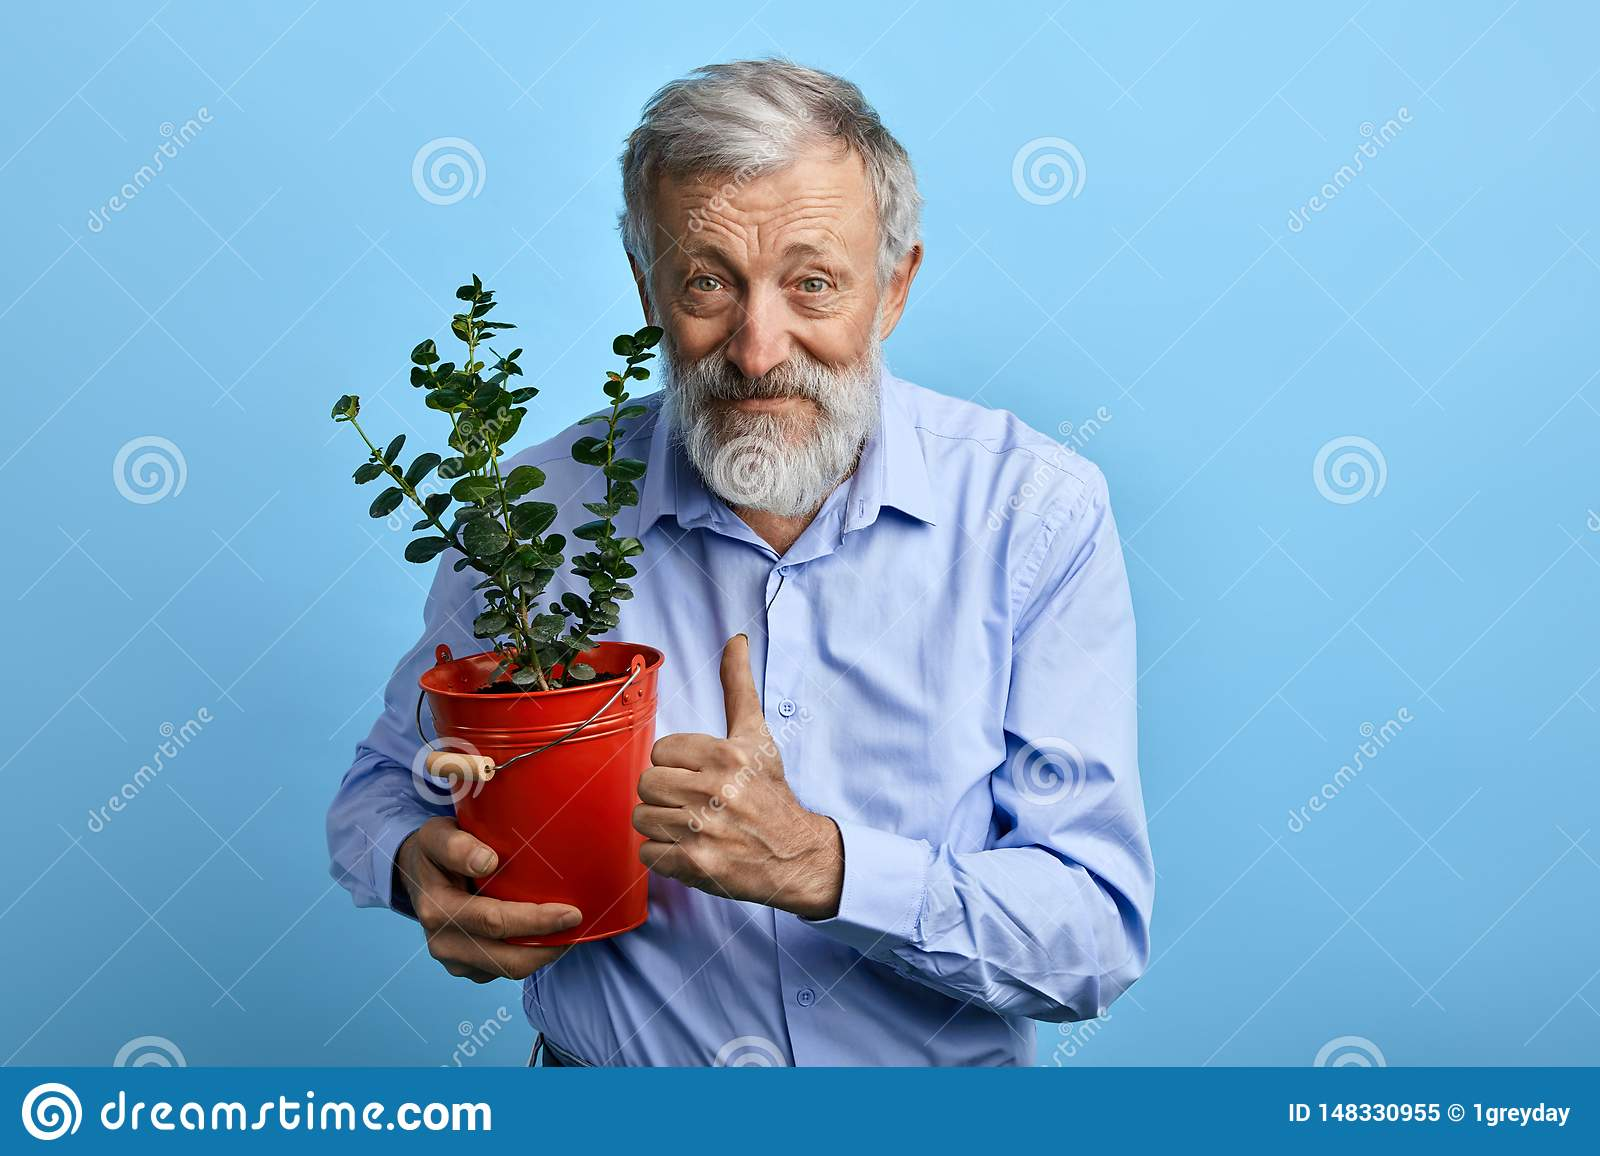 Happy senior man in blue shirt holding flower pot and showing thumb up